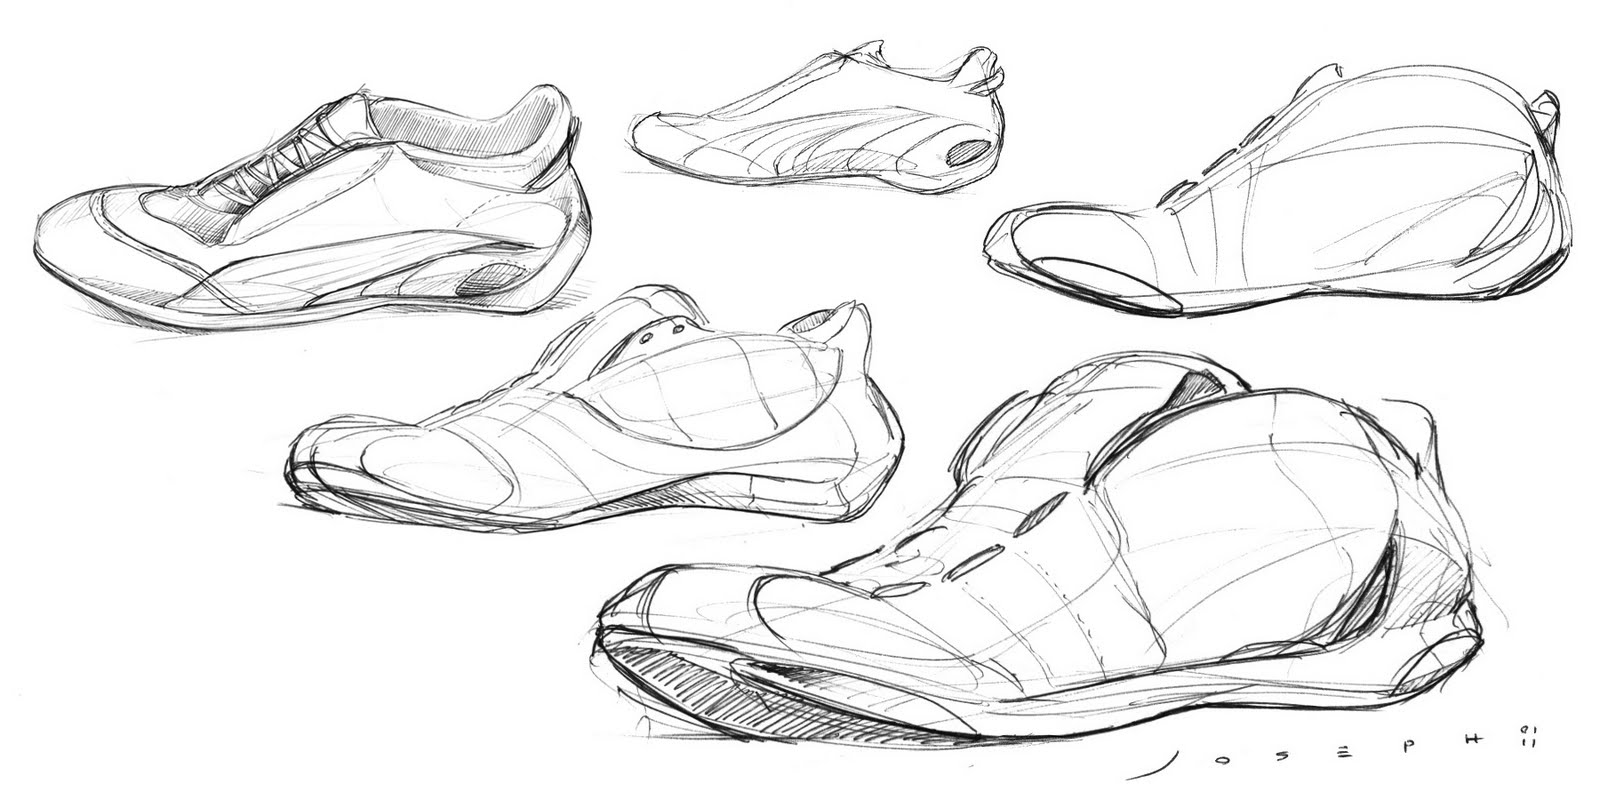 Shoe Designs Drawings Compared to Drawing a Car